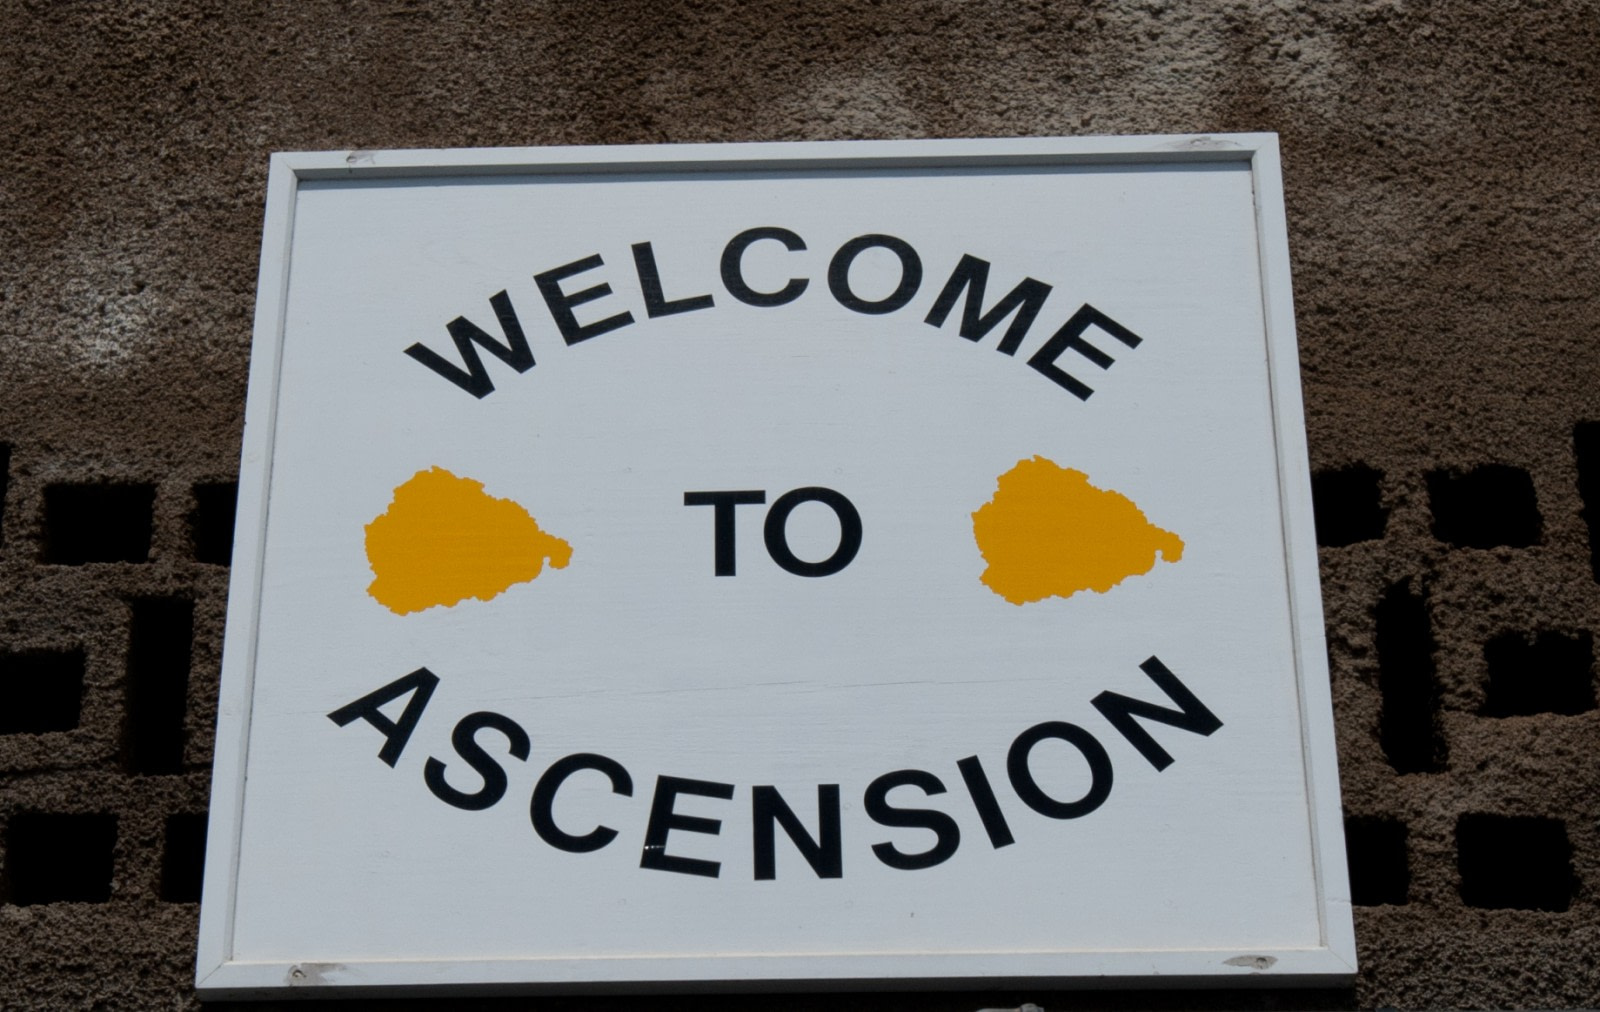 Welcome to Ascension